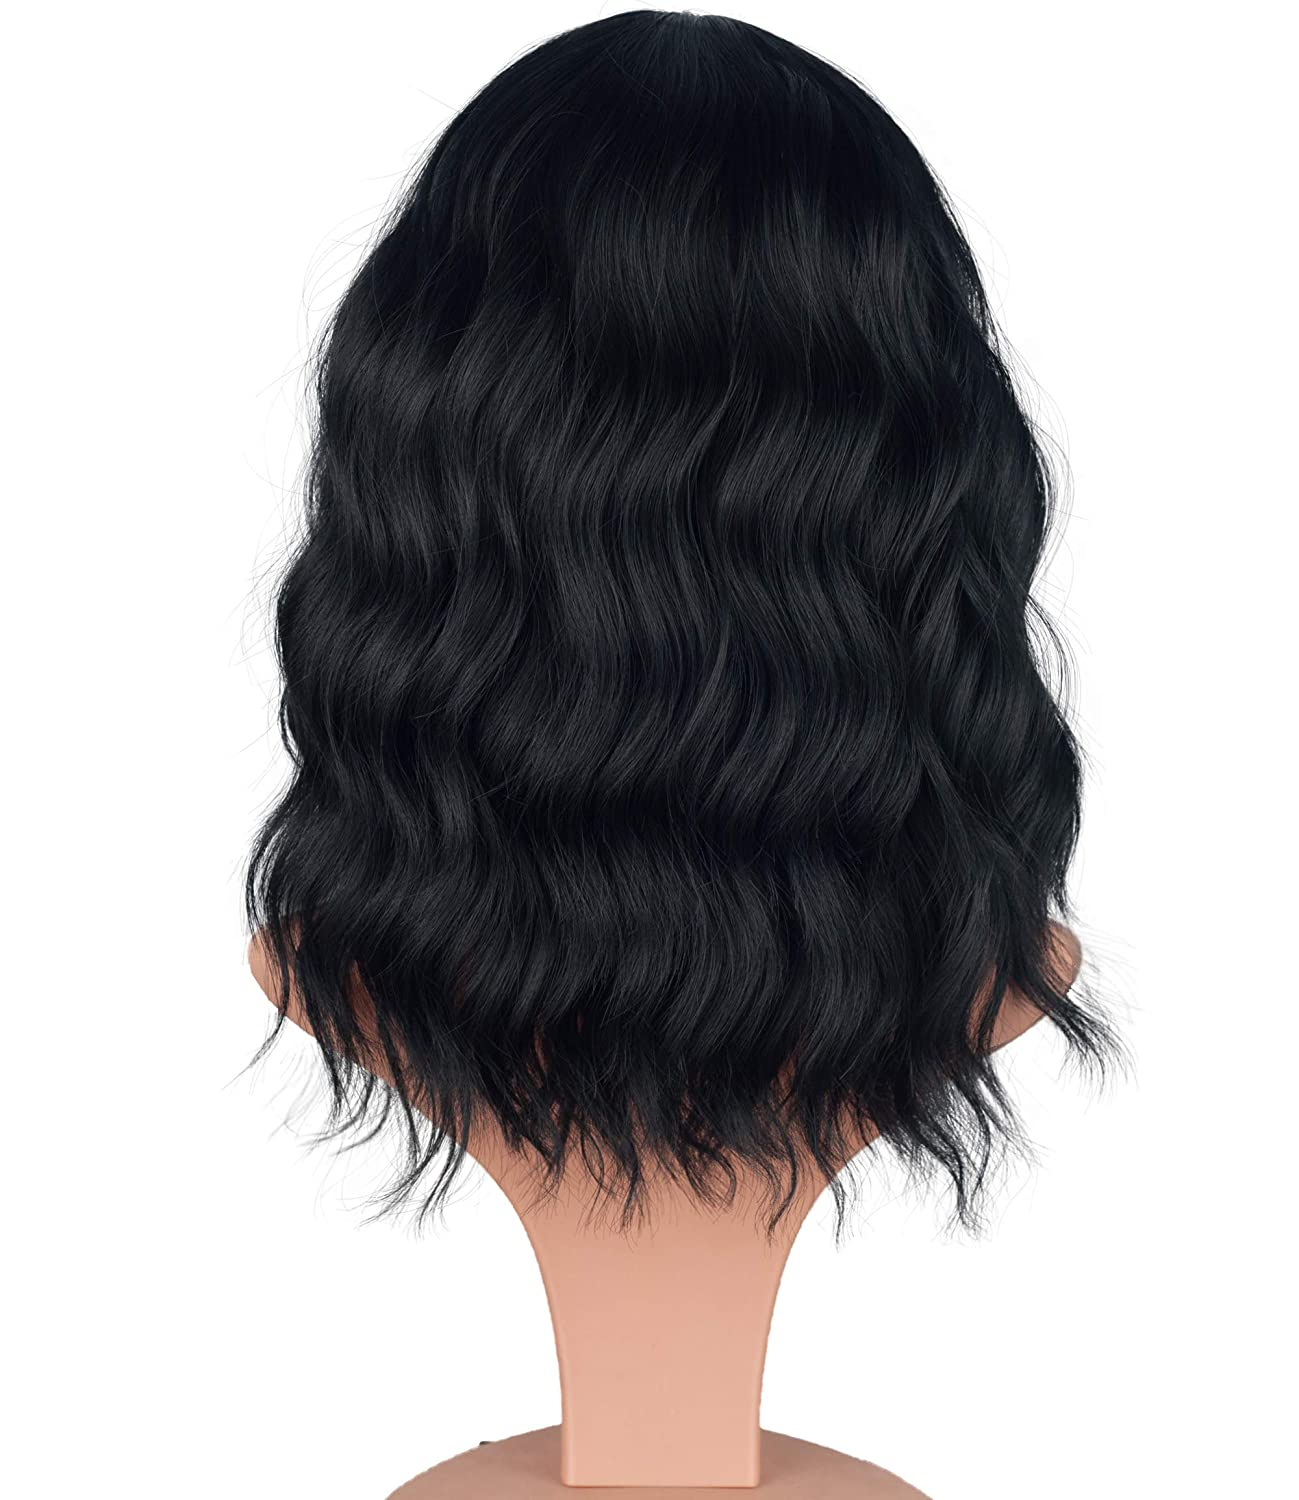 Fashion Short wavy wigs for black women Black Mix Brown Curly Hair Wigs With Bangs None Lace Synthetic Full Wigs Heat Resistant Cosplay Party Custom Wigs Black Mix Brown